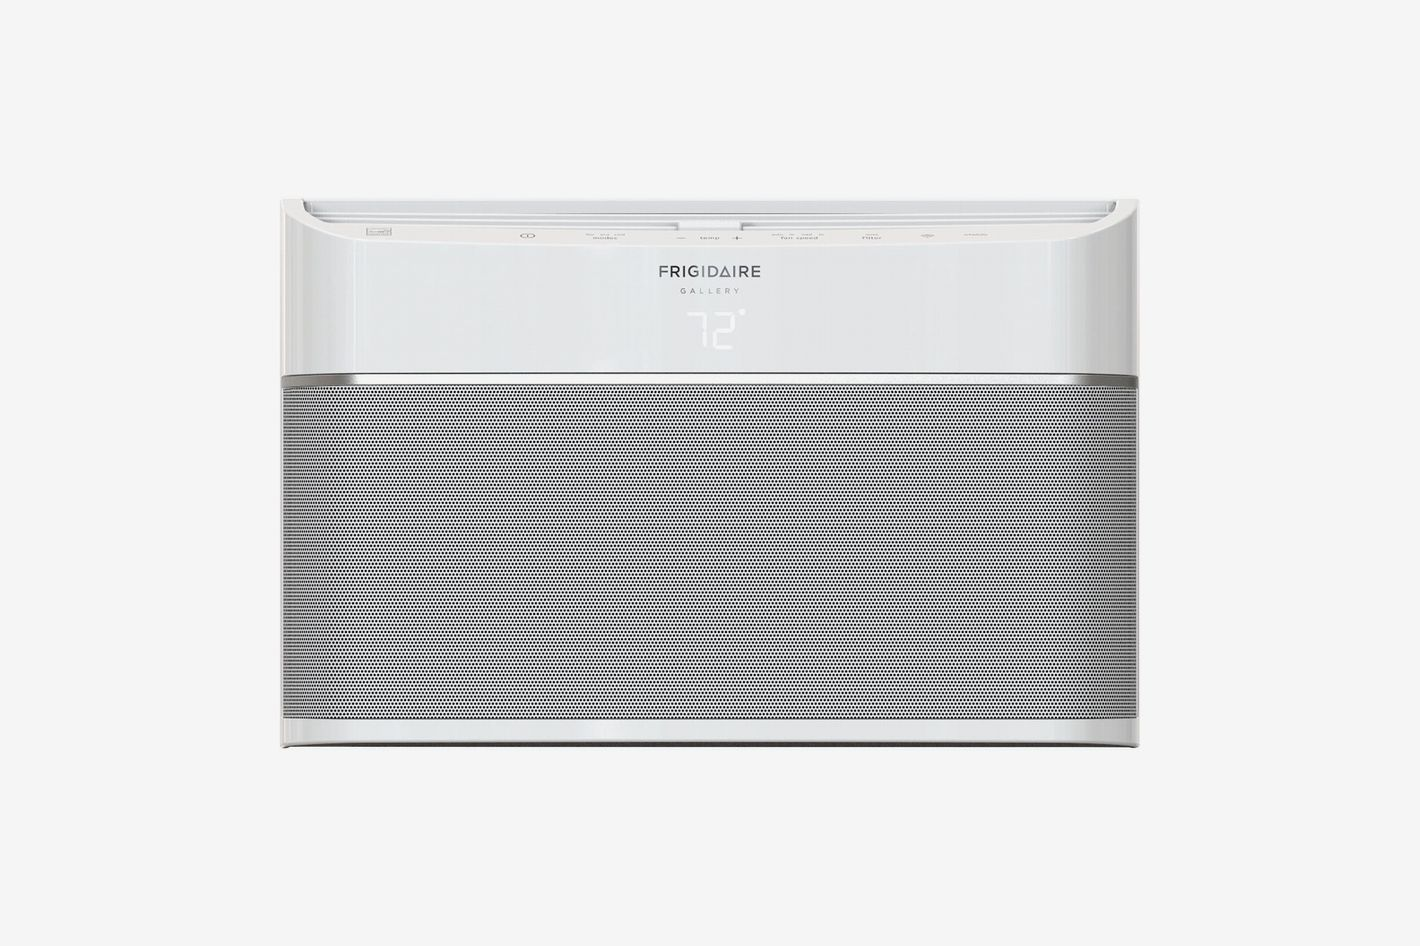 Frigidaire Gallery 10,000 BTU Cool Connect Smart Air Conditioner